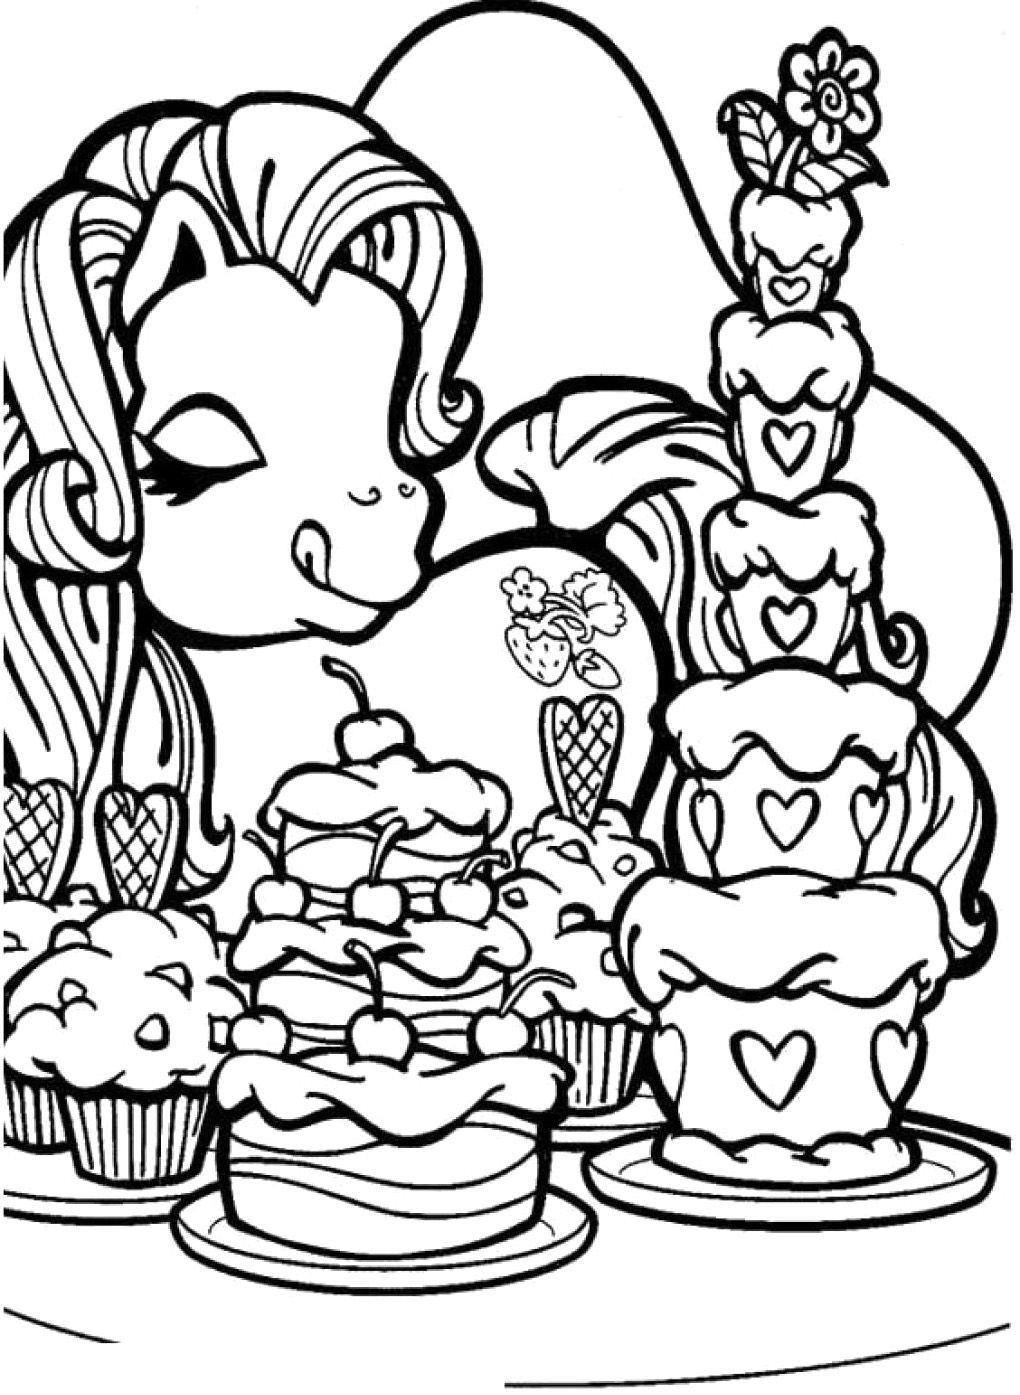 My Little Pony Love Cake Coloring Pages Coloring page